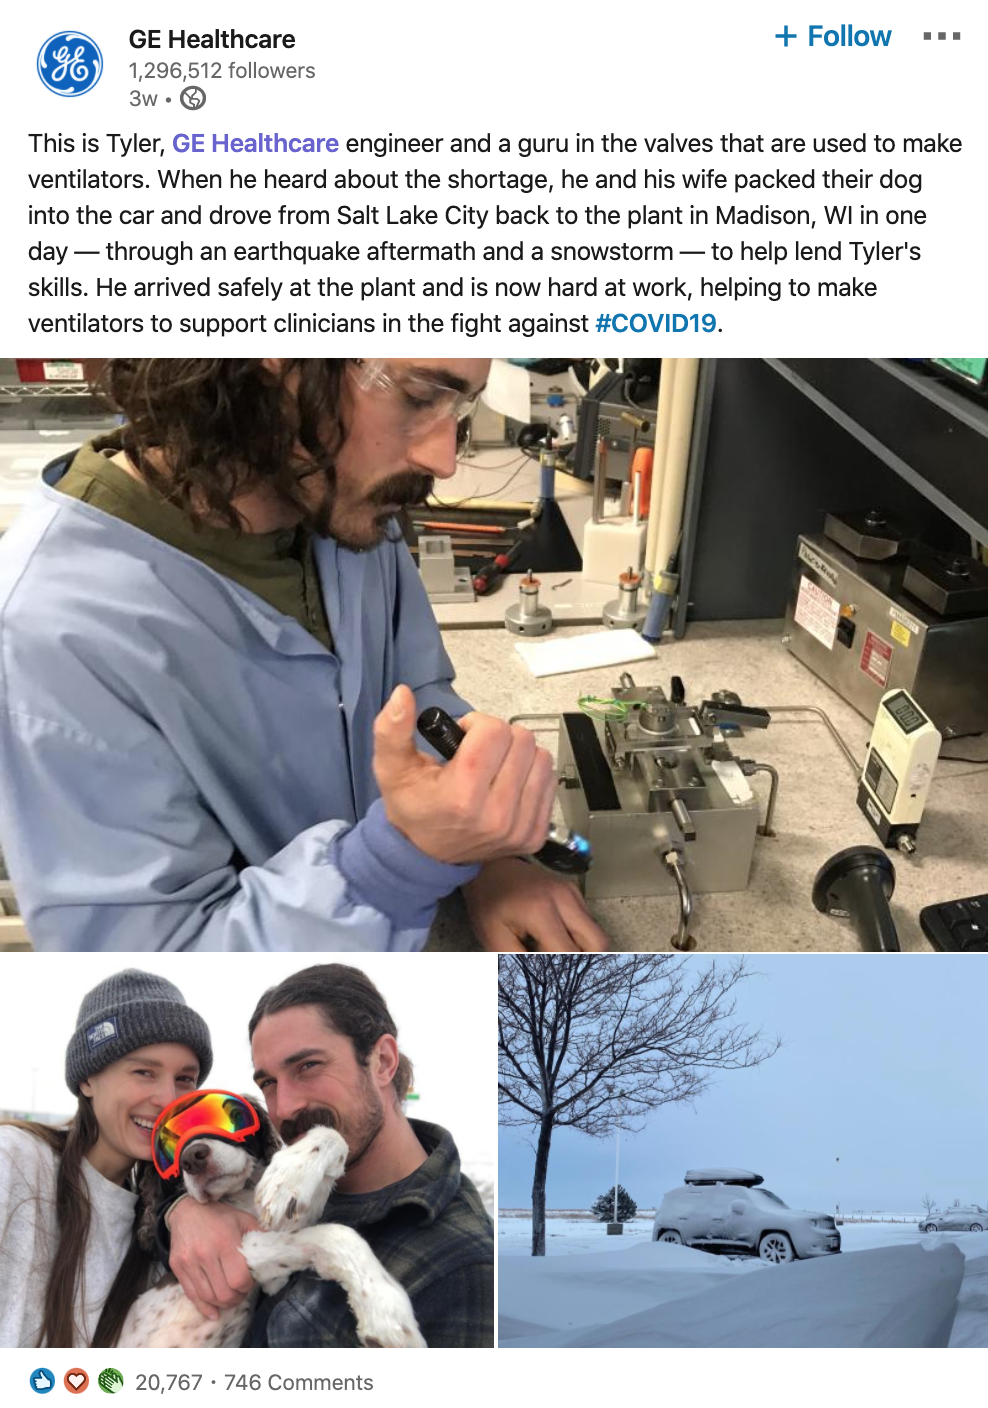 Screenshot of post from GE Healthcare's LinkedIn company page:  This is Tyler, GE Healthcare engineer and a guru in the valves that are used to make ventilators. When he heard about the shortage, he and his wife packed their dog into the car and drove from Salt Lake City back to the plant in Madison, WI in one day — through an earthquake aftermath and a snowstorm — to help lend Tyler's skills. He arrived safely at the plant and is now hard at work, helping to make ventilators to support clinicians in the fight against #COVID19.  [[includes photos of Tyler working, his car parked in the snow, and a photo of he, his wife, and their dog]]